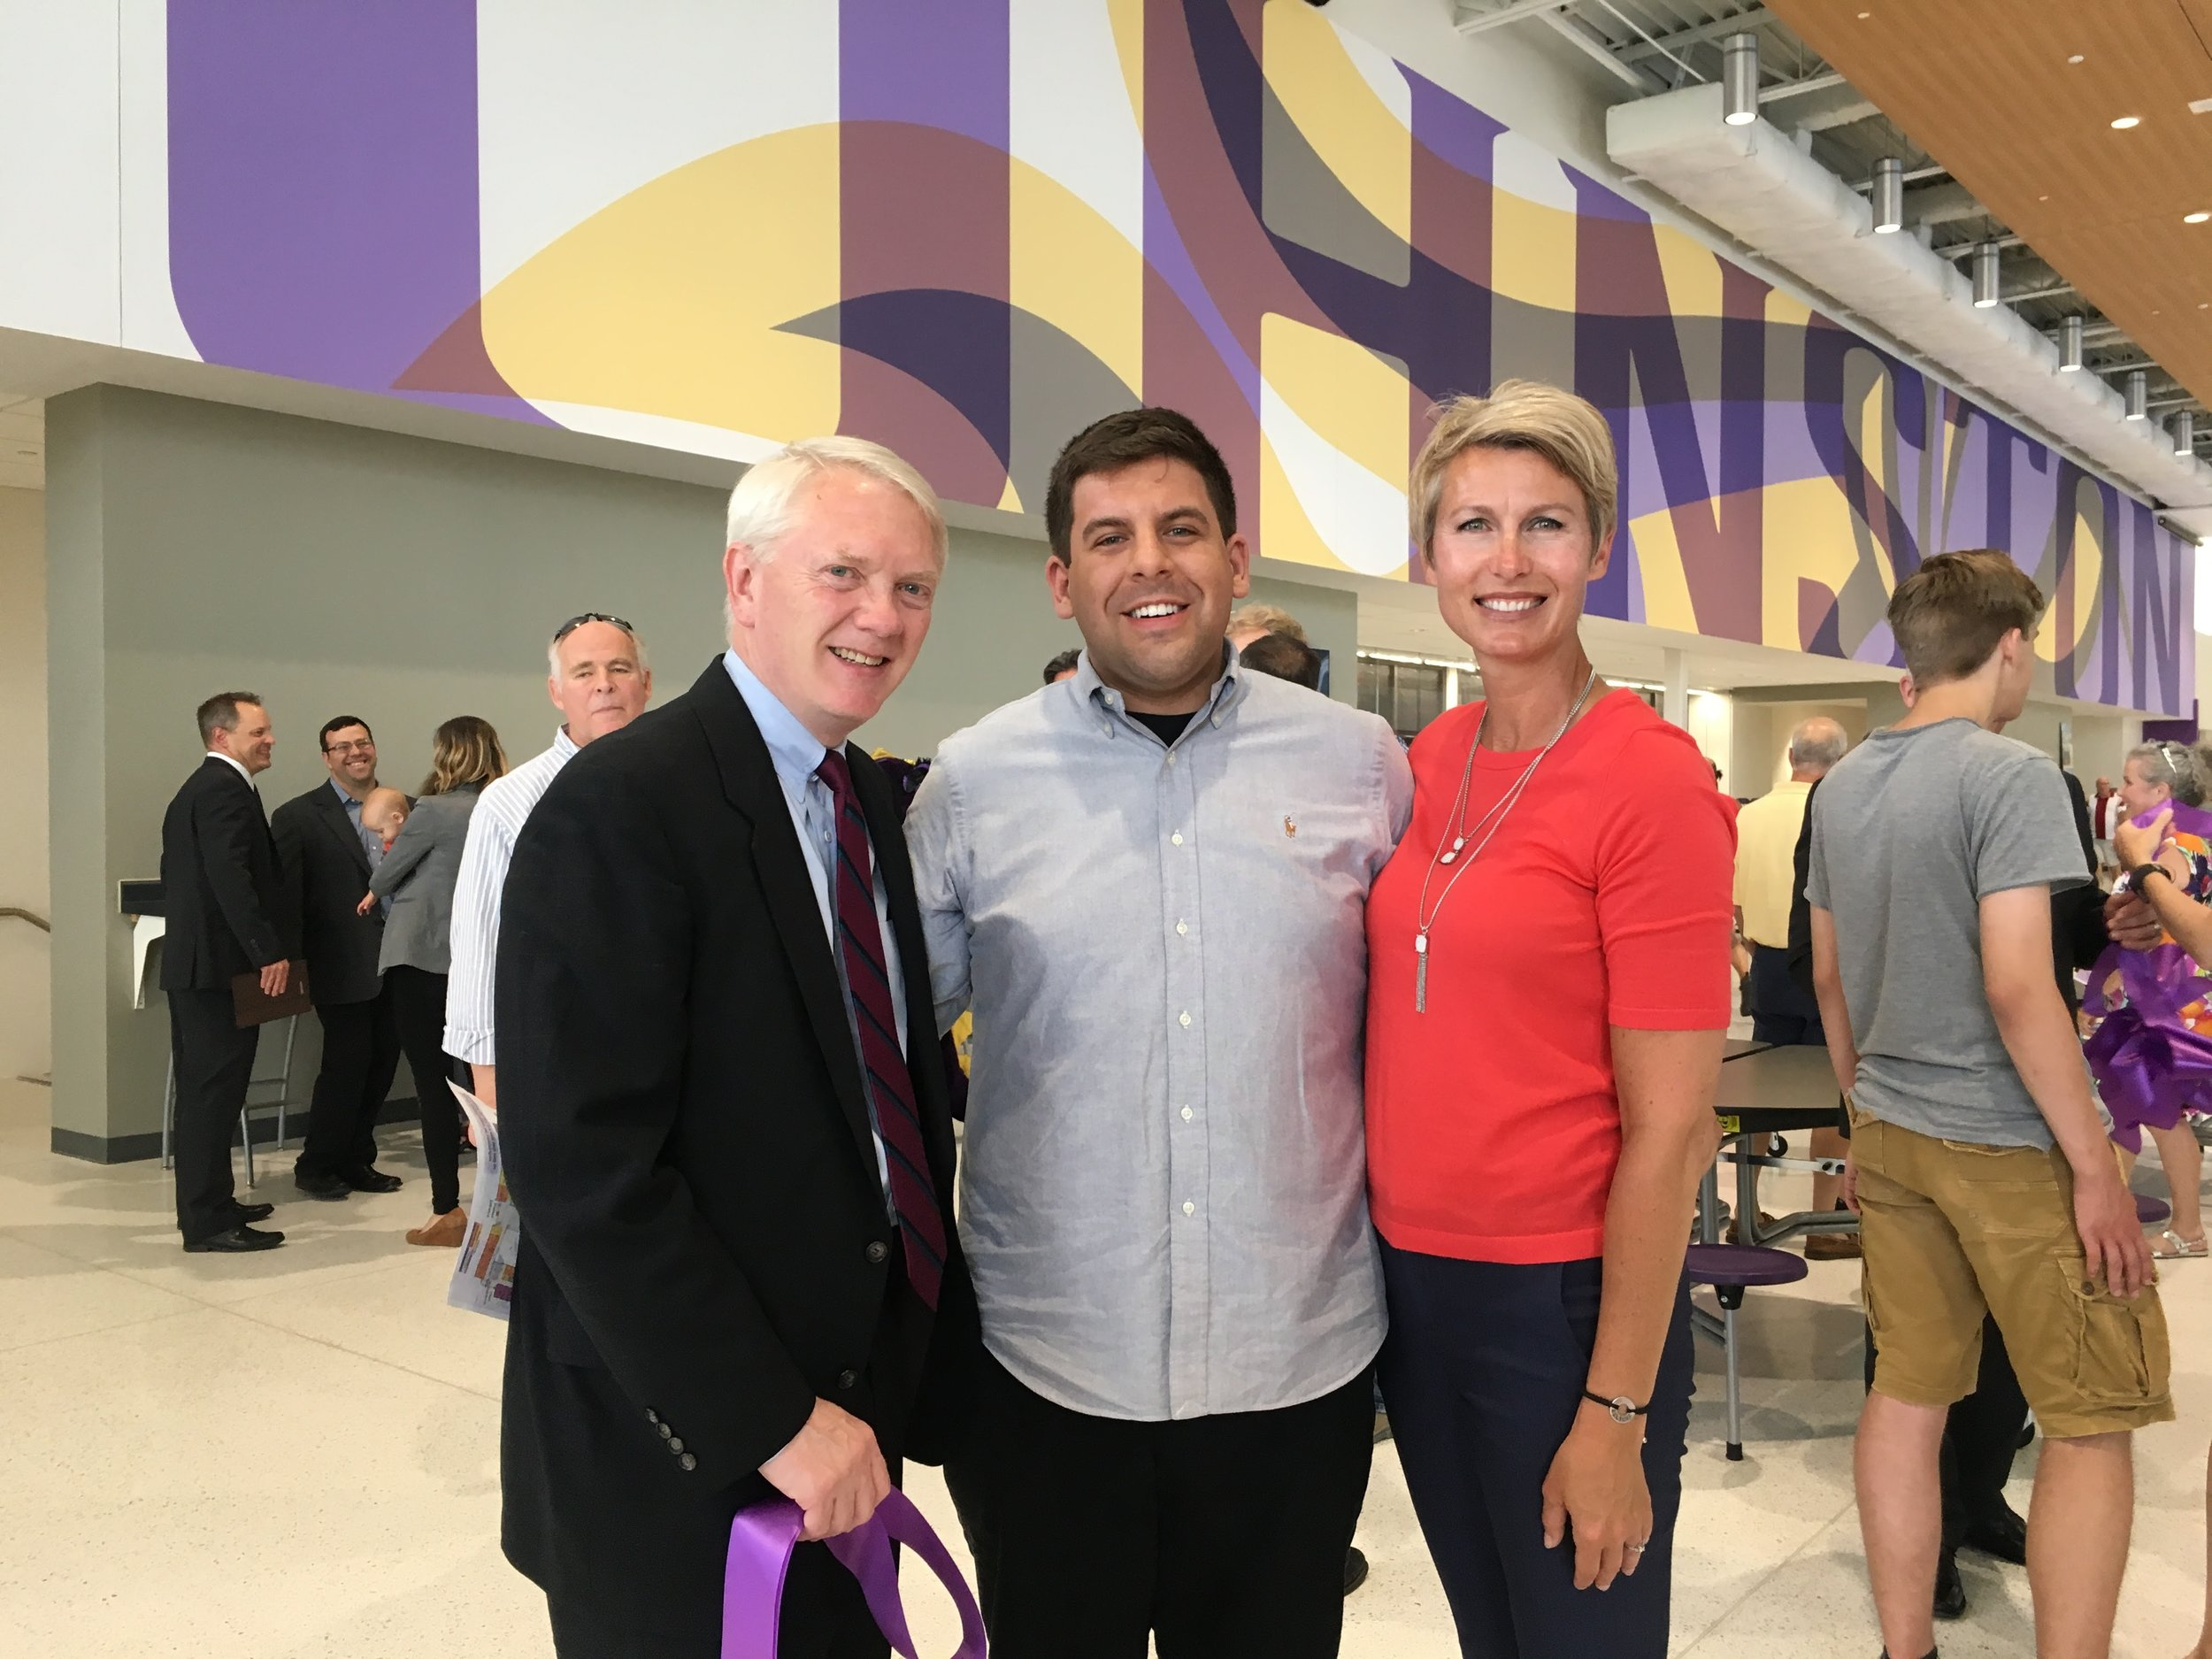 Ribbon cutting for the new Johnston HS with fellow committee co-chairs Mark and Jacqueline; we are missing one more in the pic as we couldn't find our other co-chair Bob!